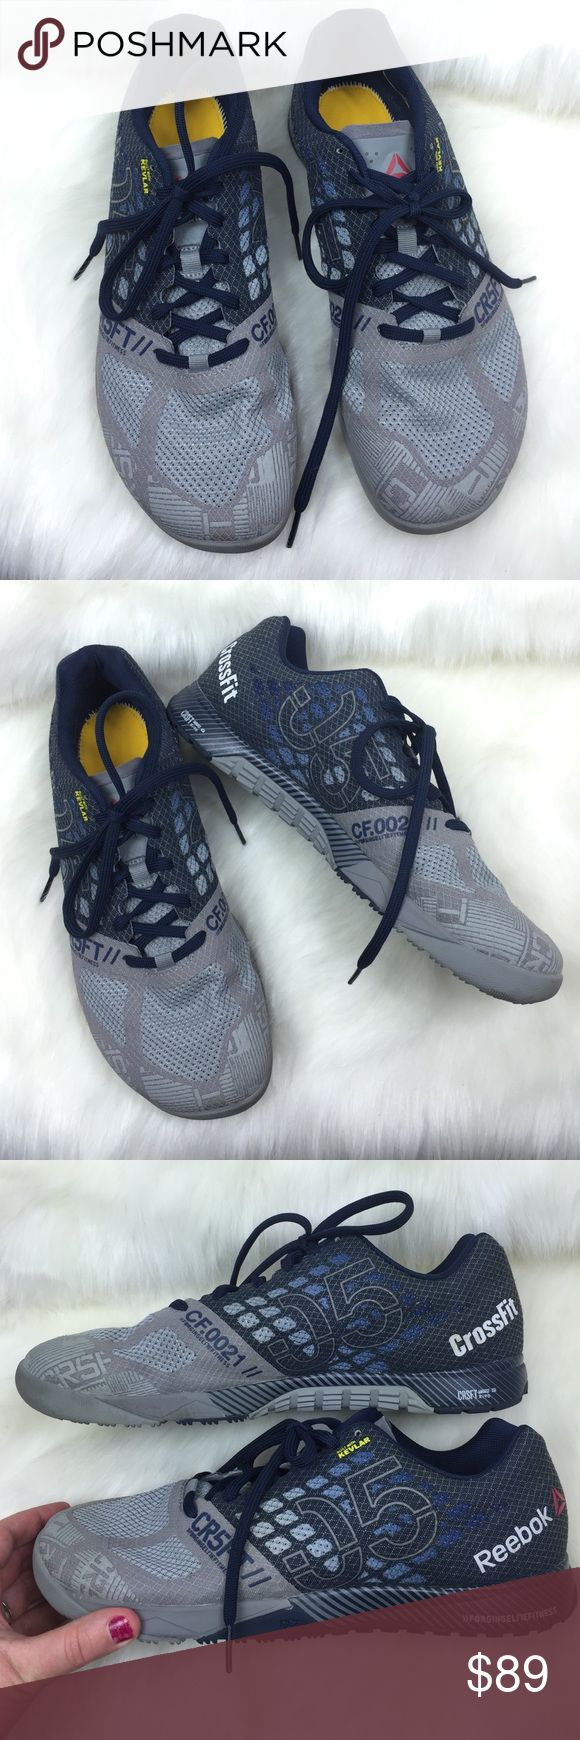 REEBOK MENS CROSSFIT KEVLAR, 11 VERY NICE preowned condition! Get them here for way cheaper than brand new! *These do not have the insoles. REEBOK CROSSFIT SHOES! MENS size 11! 202F17P Reebok Shoes Athletic Shoes